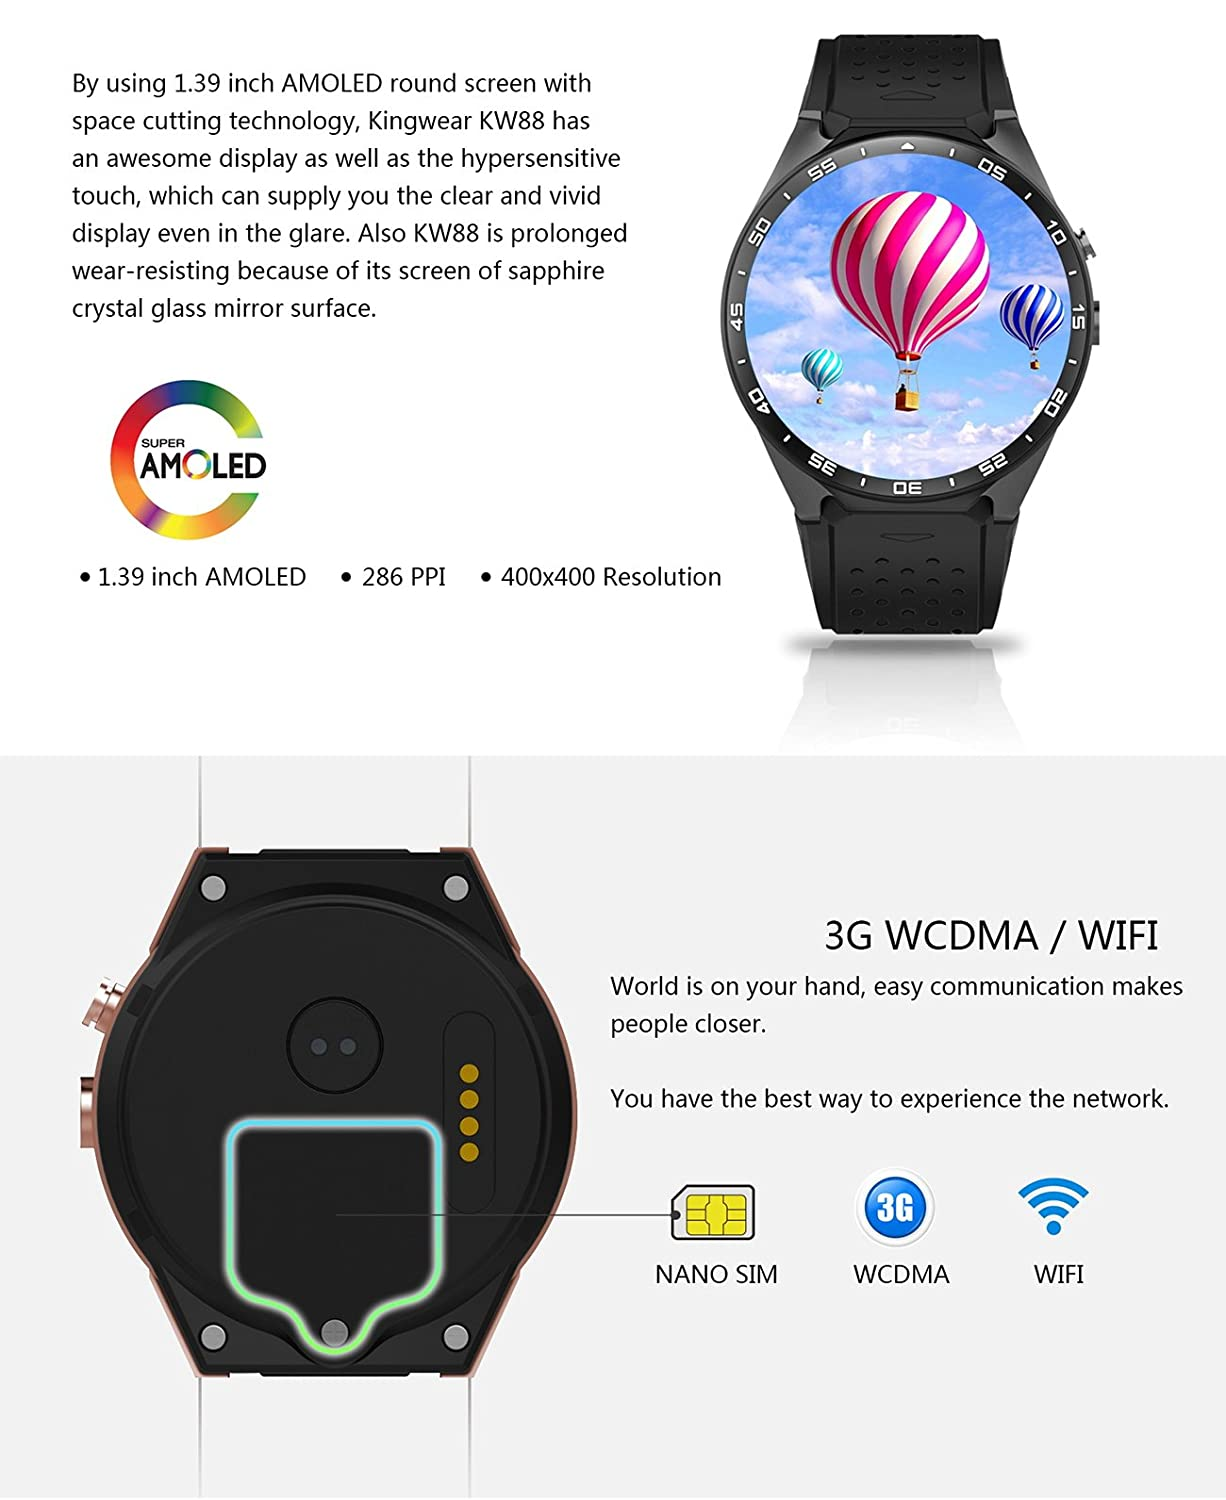 Kw88 Kingwear Smartwatch With 3g Quad Core Support 2 0mp Camera